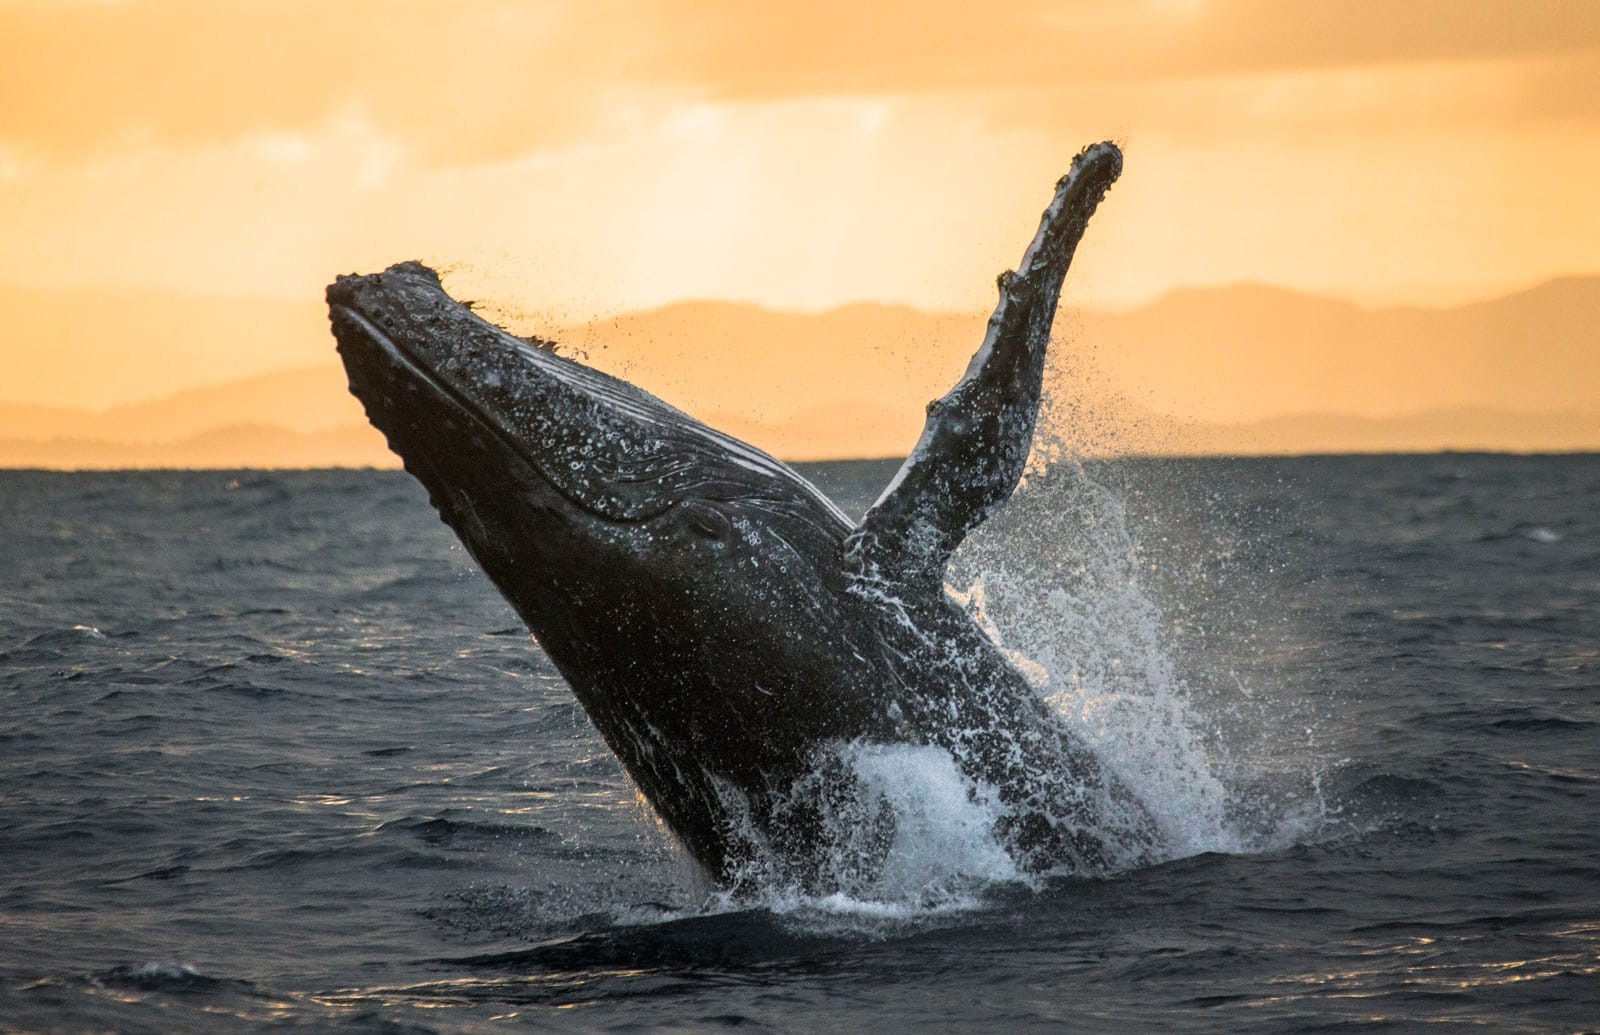 December to April is the whale watching season (February in Cabo is when the babies are most active)